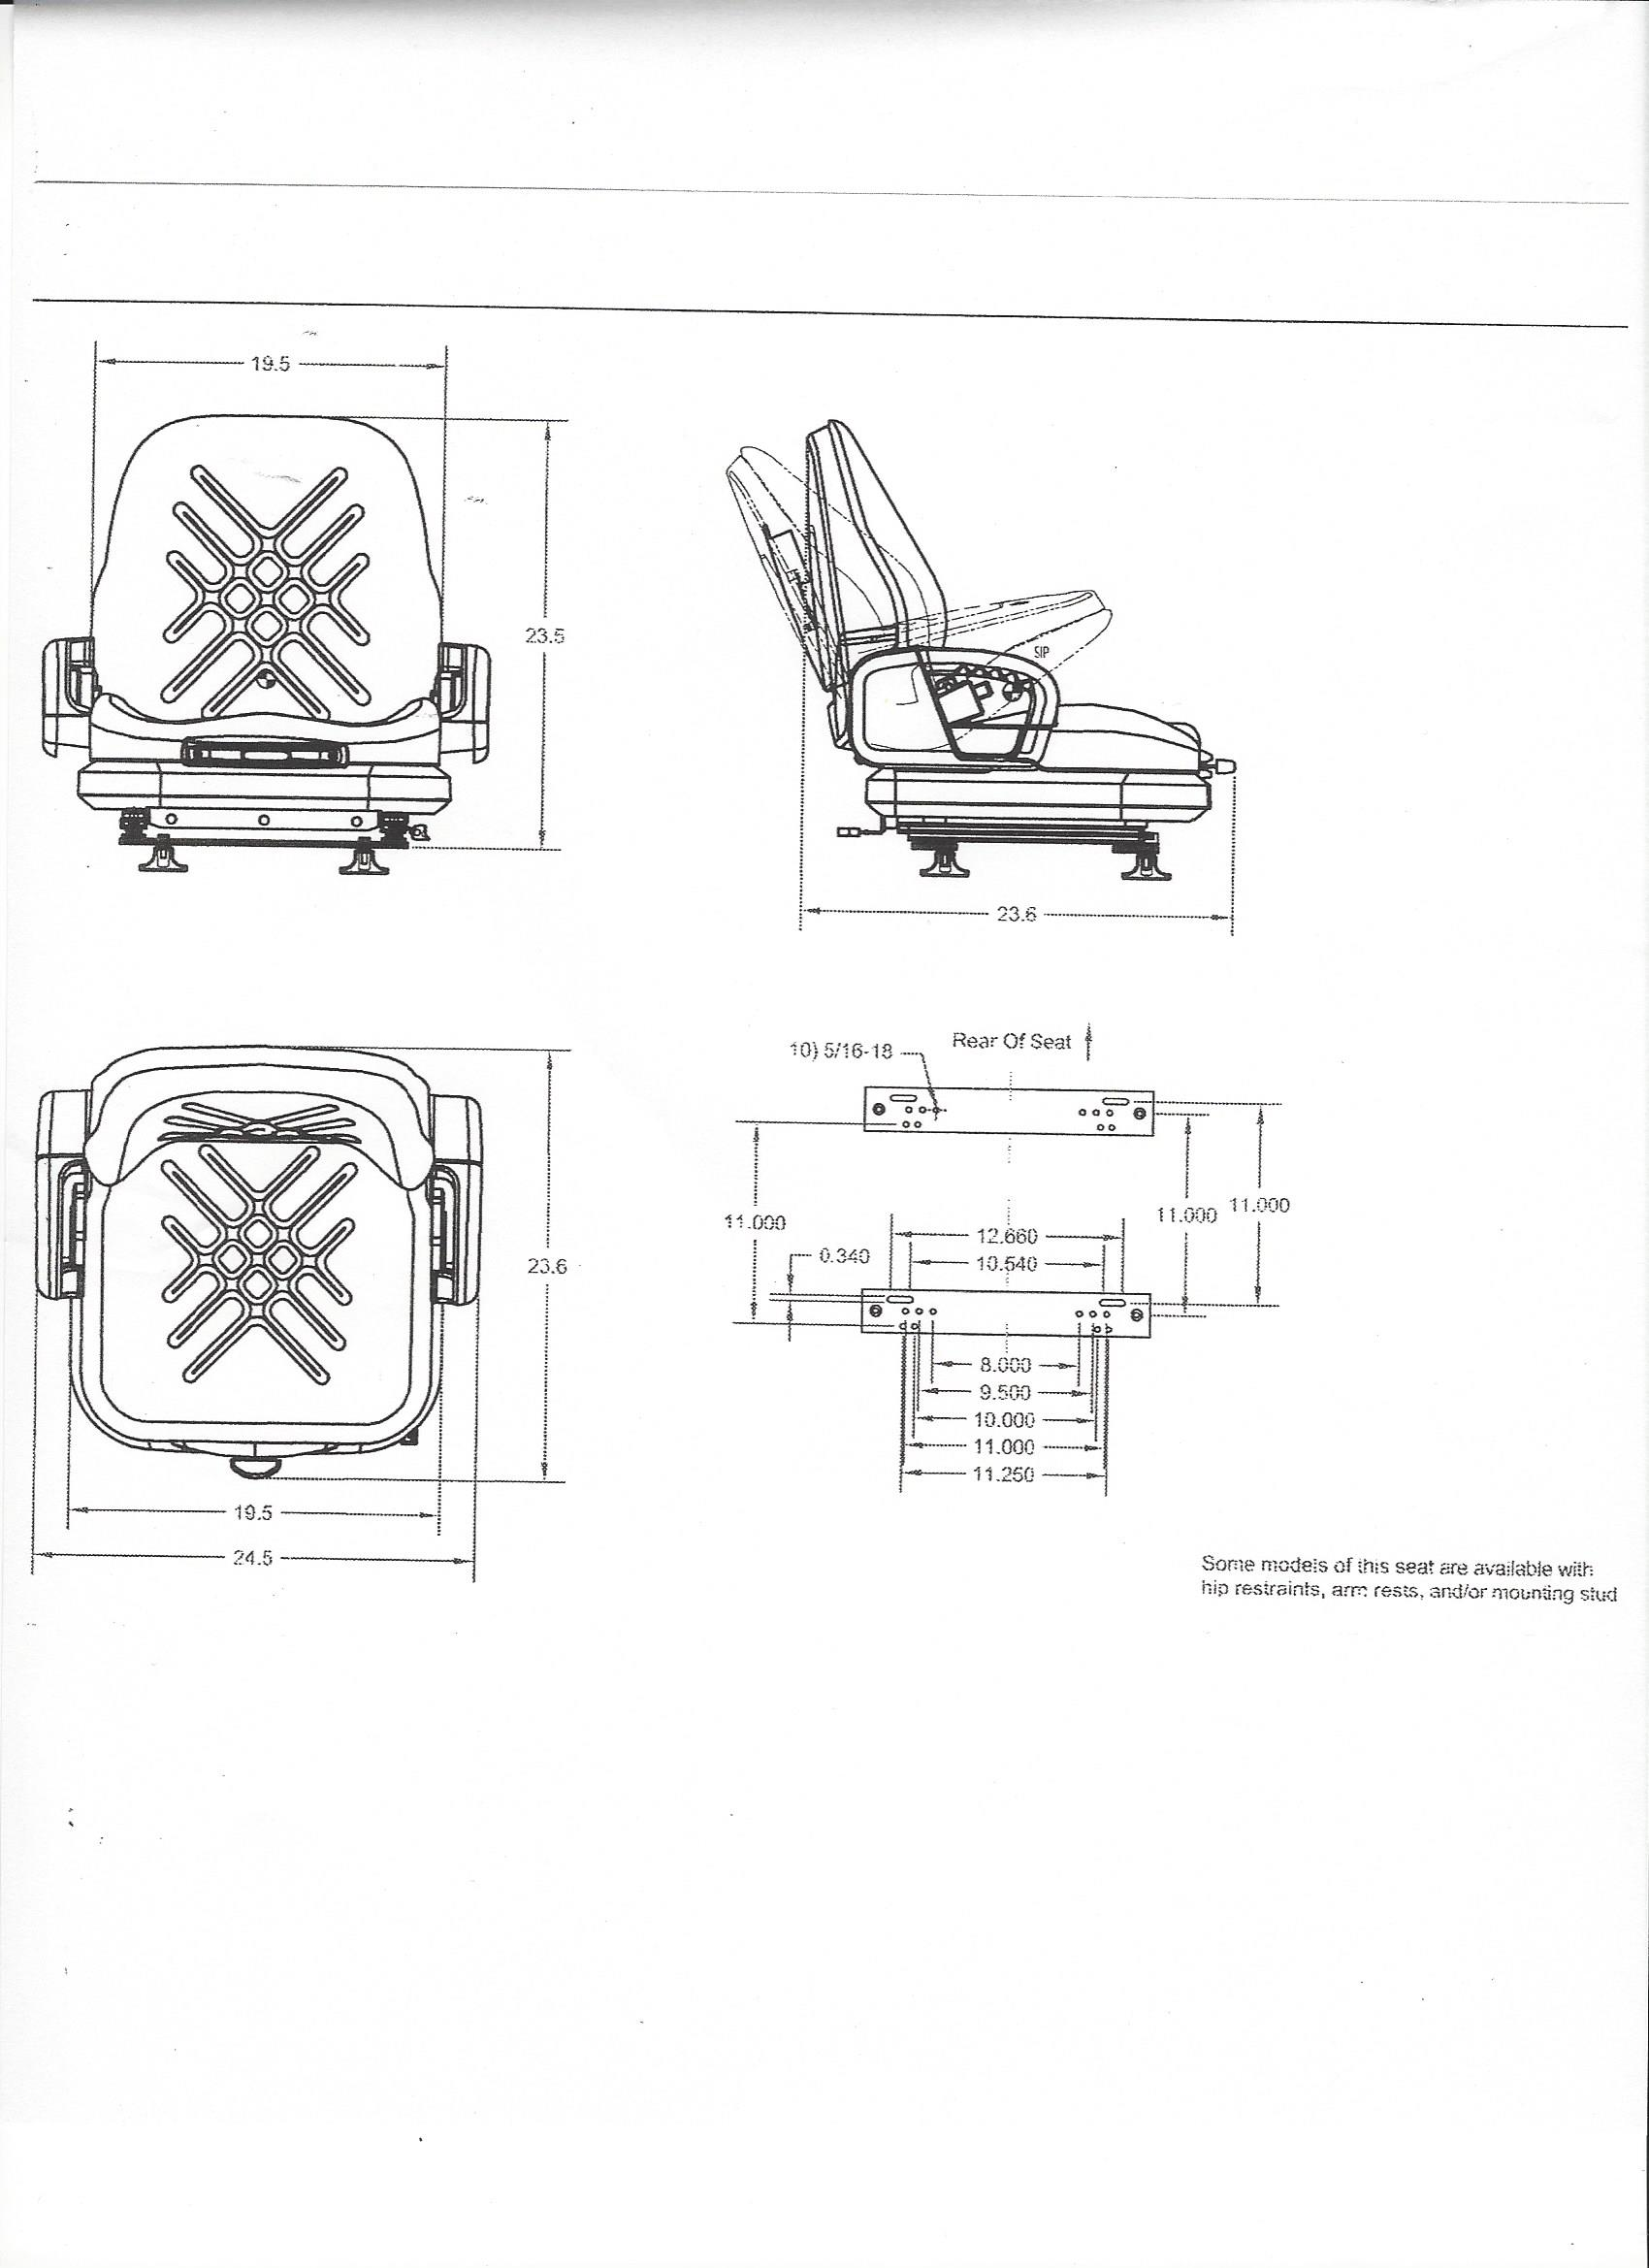 premium integrated suspension seat for kubota r420 r520 wheel rh seat warehouse com Kubota Alternator Wiring Kubota Service Manual Wiring Diagram